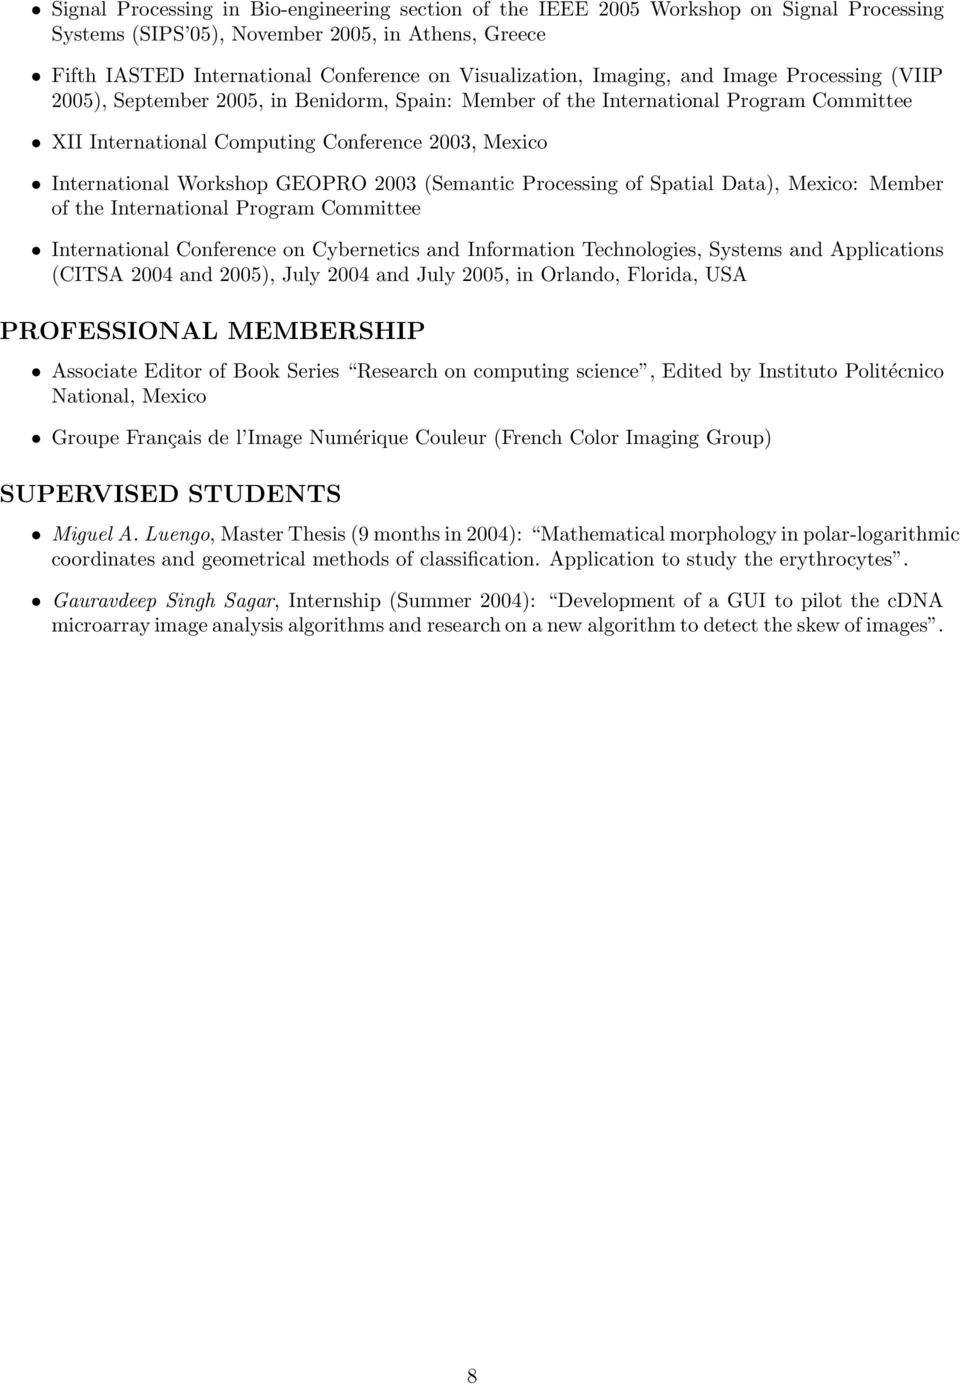 GEOPRO 2003 (Semantic Processing of Spatial Data), Mexico: Member of the International Program Committee International Conference on Cybernetics and Information Technologies, Systems and Applications